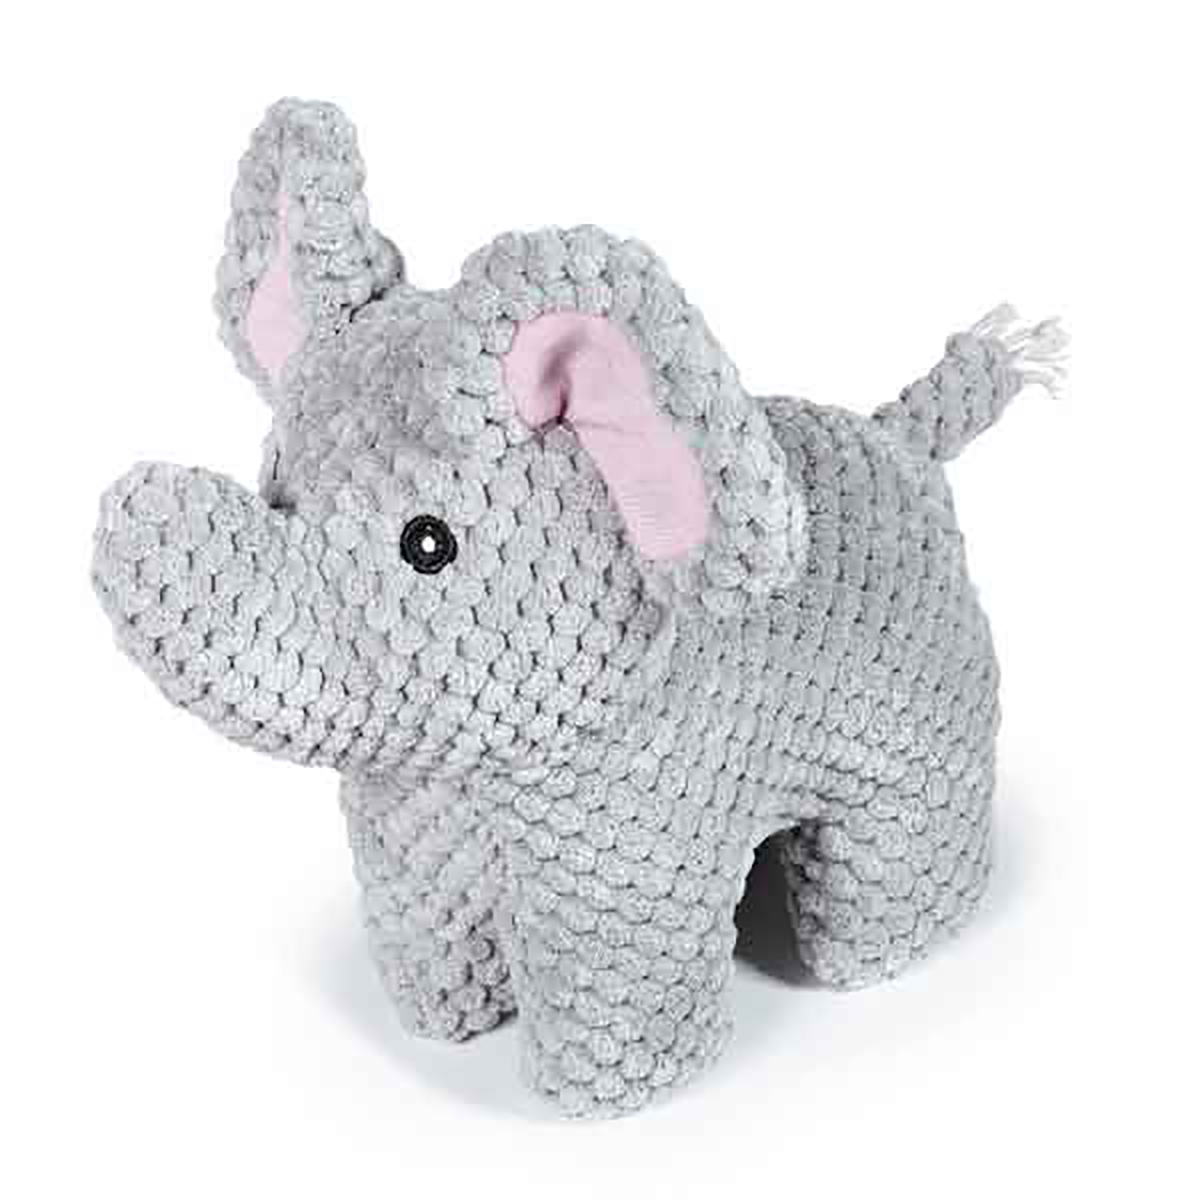 Grriggles Pachyderm Pals Dog Toy